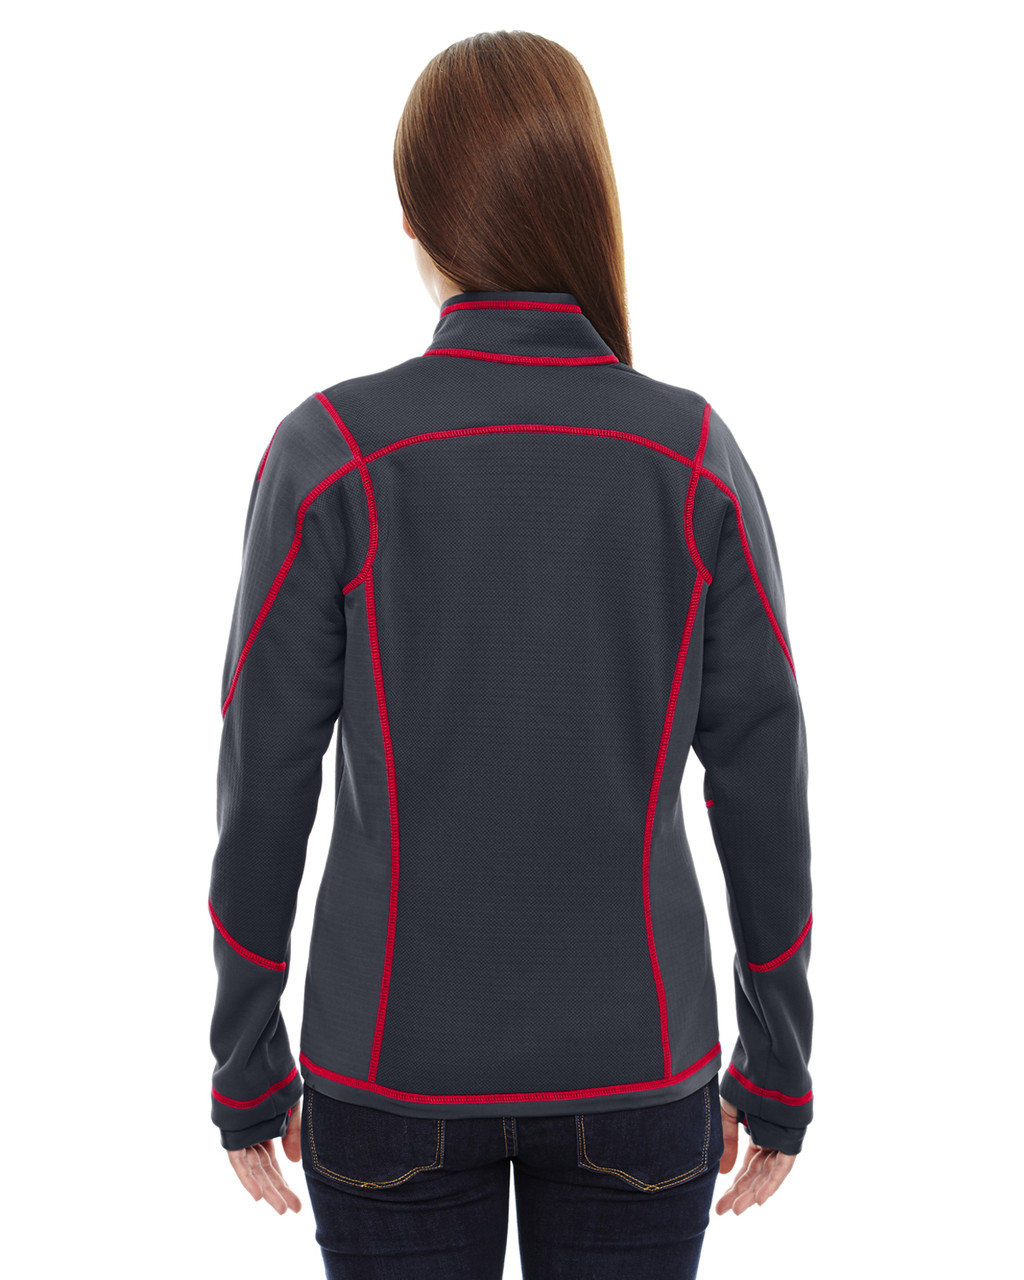 Carbon/Olympic Red-back 78681 North End Sport Red Pulse Textured Bonded Fleece Jacket with Print